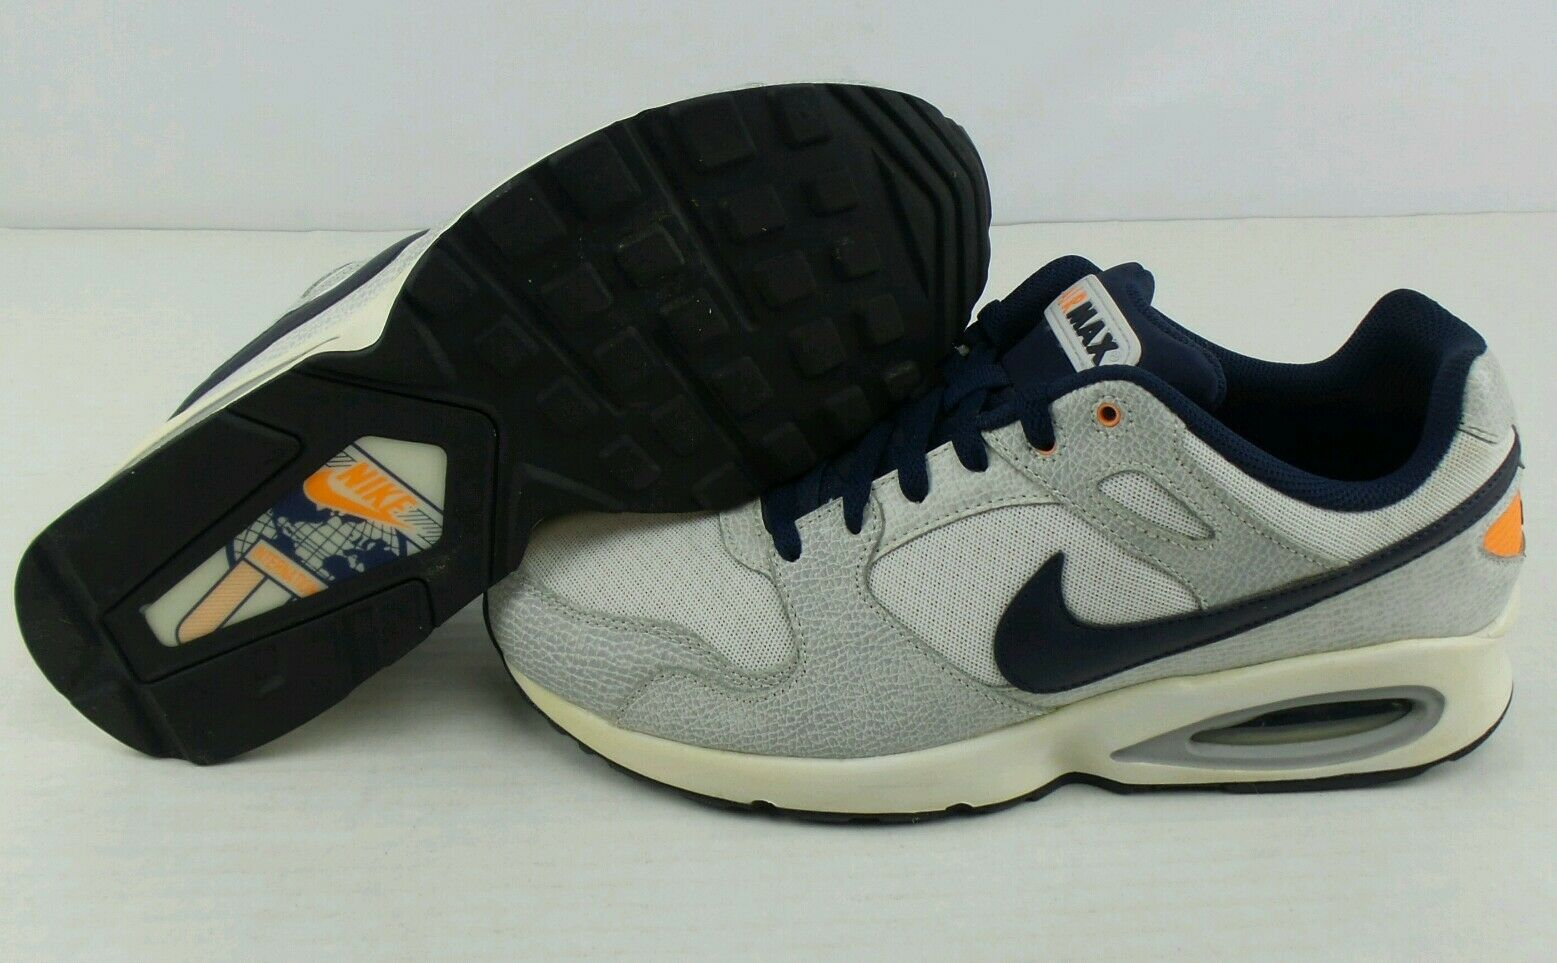 Nike Air Max Coliseum Racer Athletic Shoes Comfortable